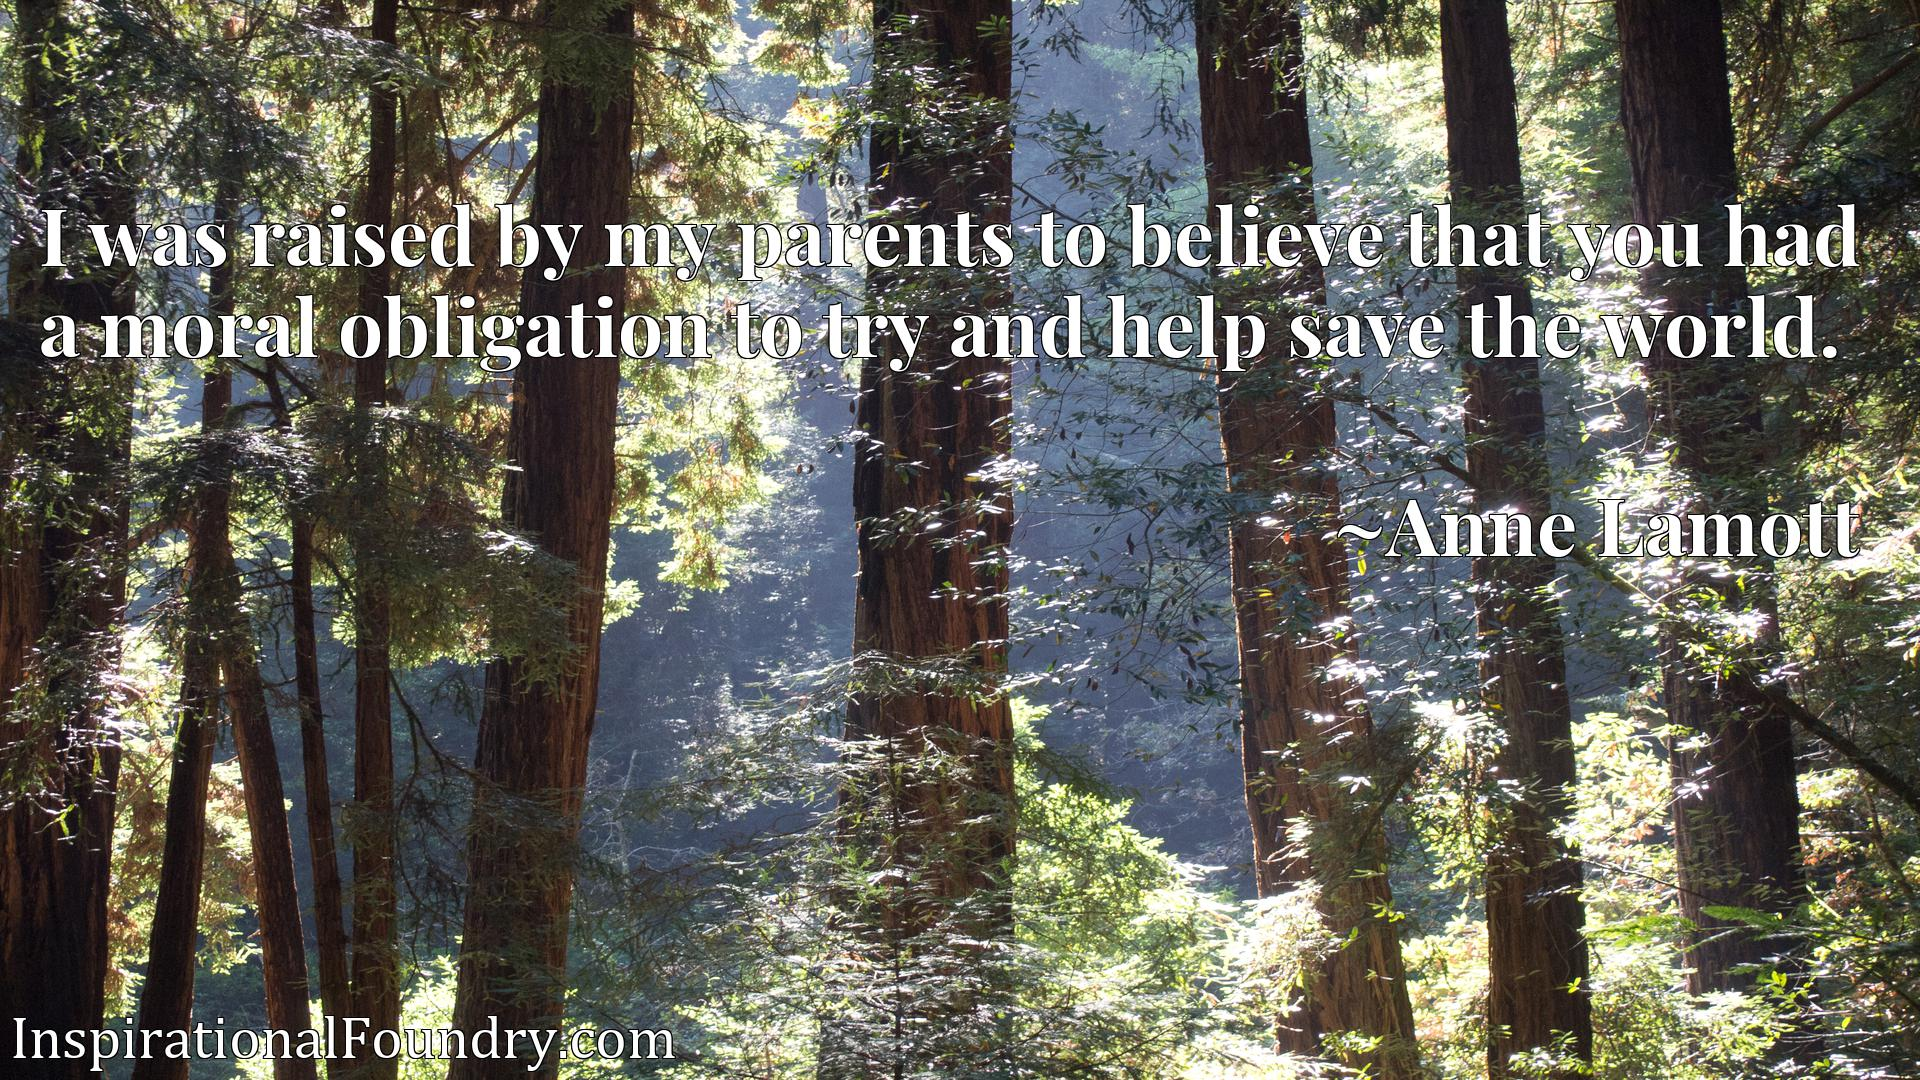 I was raised by my parents to believe that you had a moral obligation to try and help save the world.